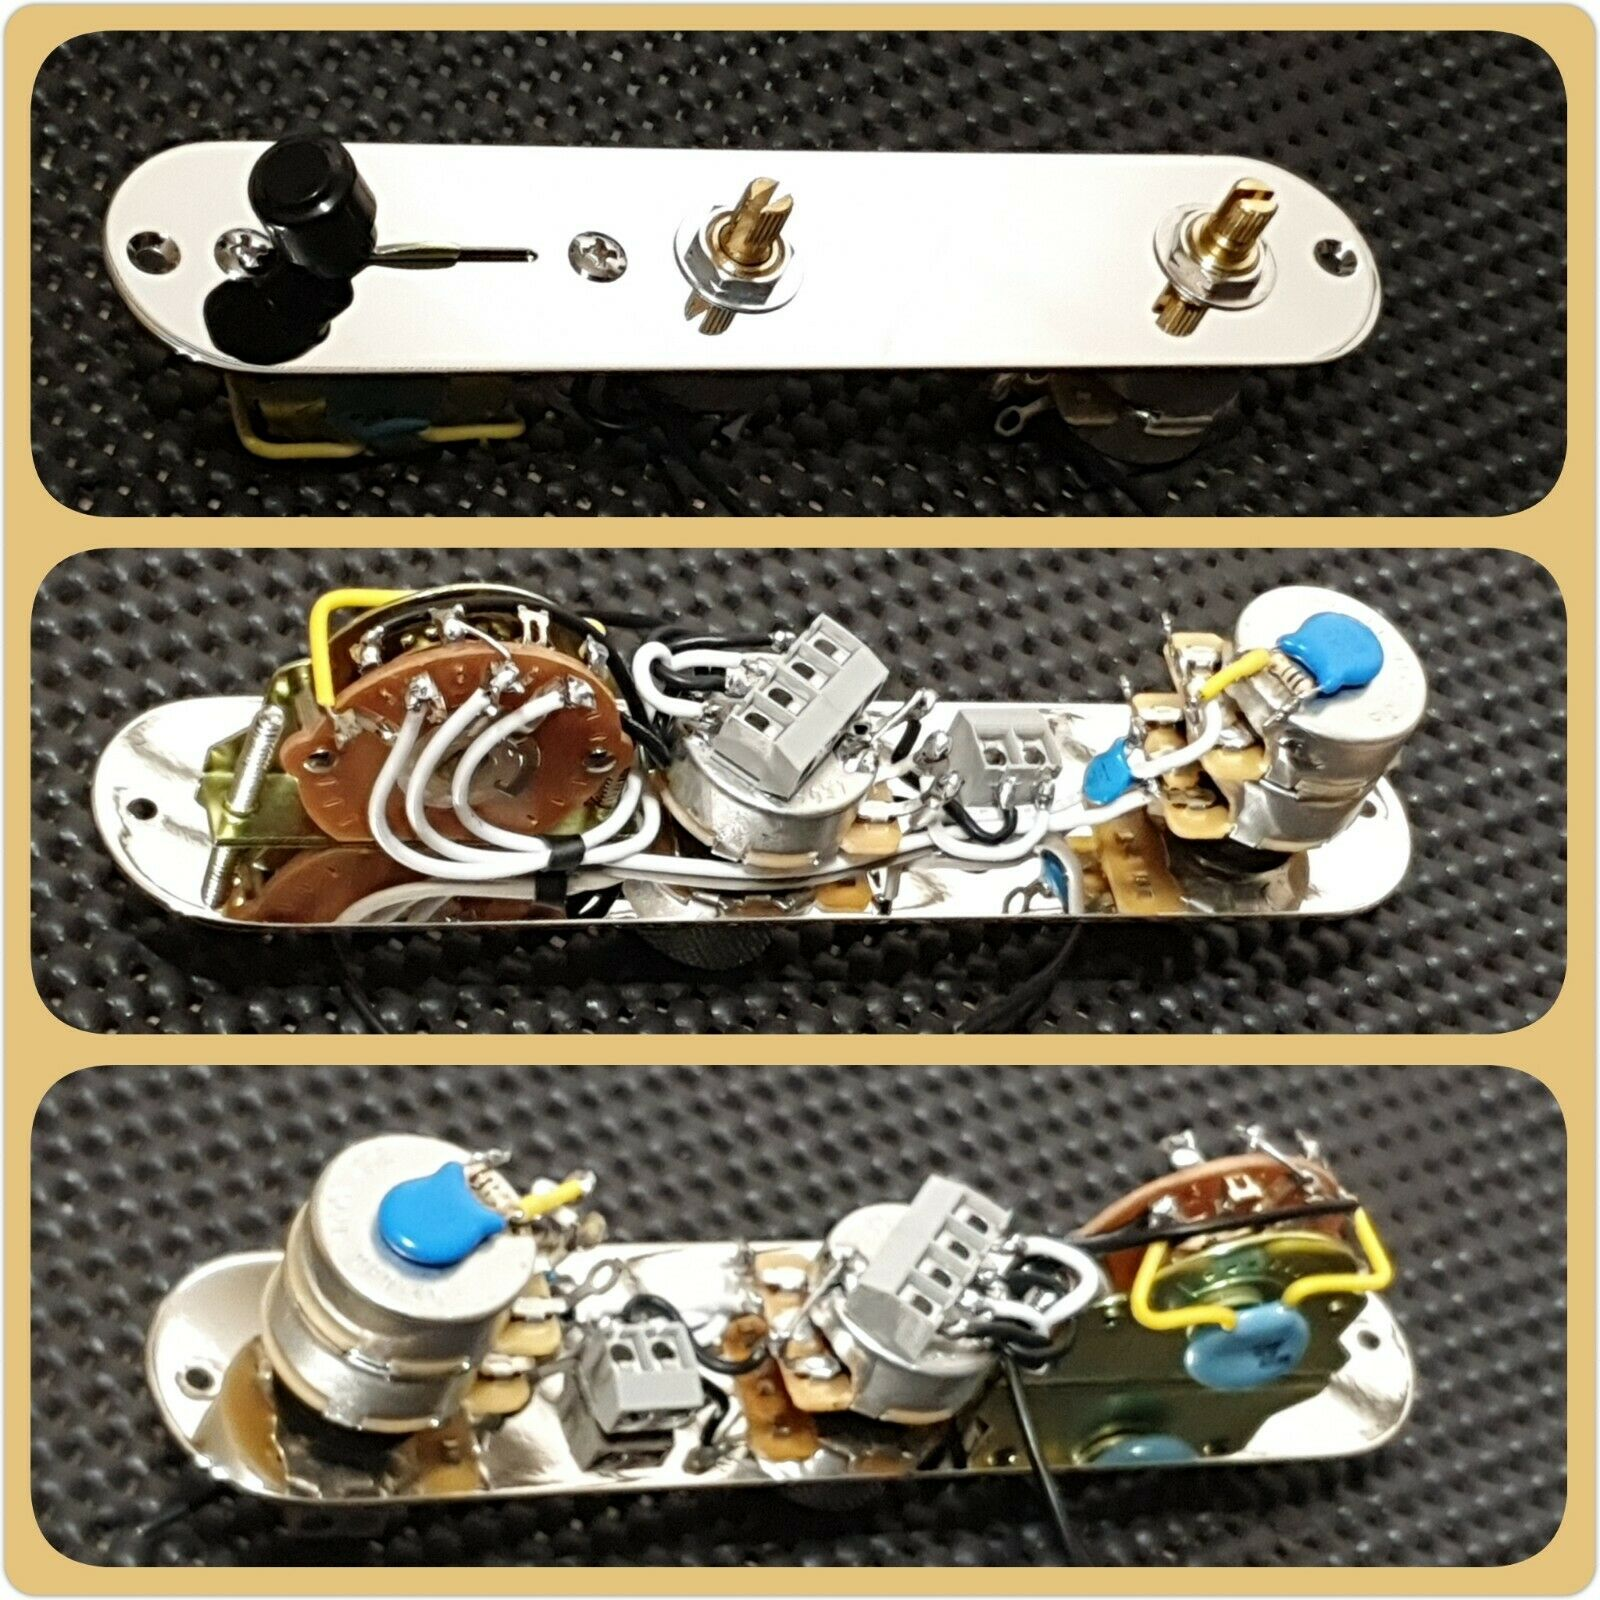 Fender Telecaster Tele 5 Way Tbx Control Plate Wiring Loom Harness American Stratocaster 1 Of 7only 4 Available